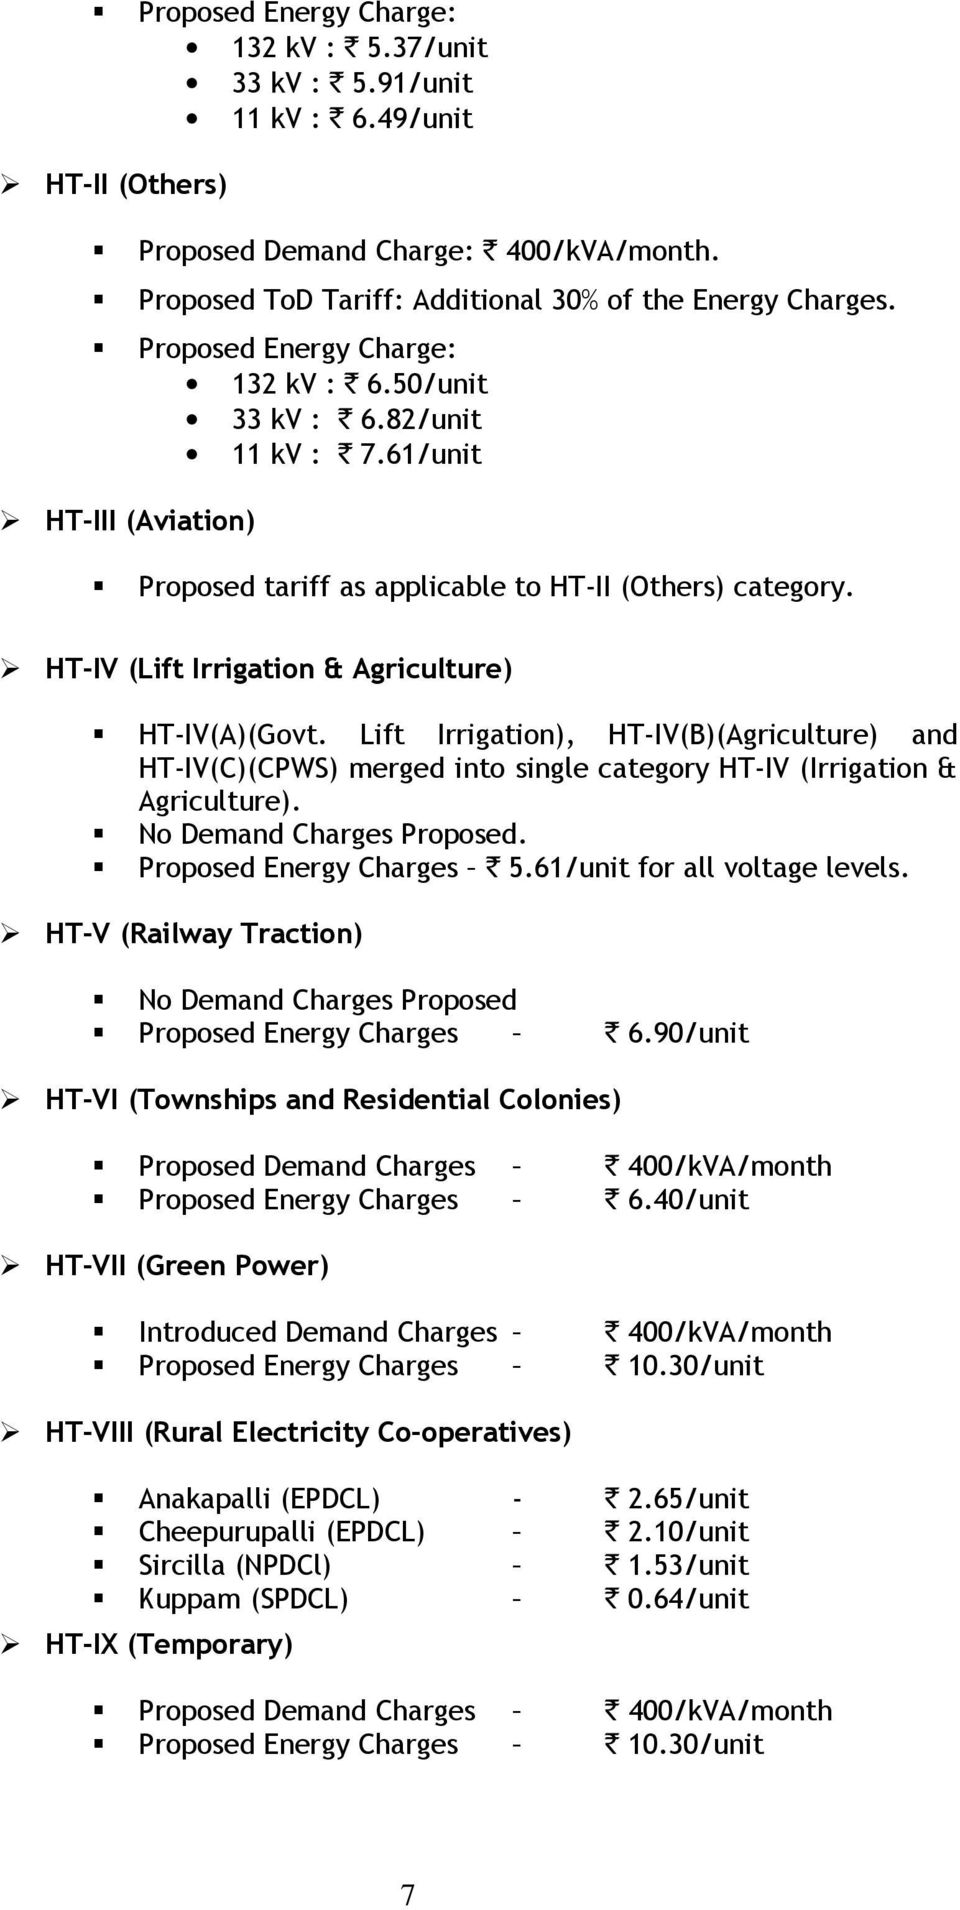 HT-IV (Lift Irrigation & Agriculture) HT-IV(A)(Govt. Lift Irrigation), HT-IV(B)(Agriculture) and HT-IV(C)(CPWS) merged into single category HT-IV (Irrigation & Agriculture).